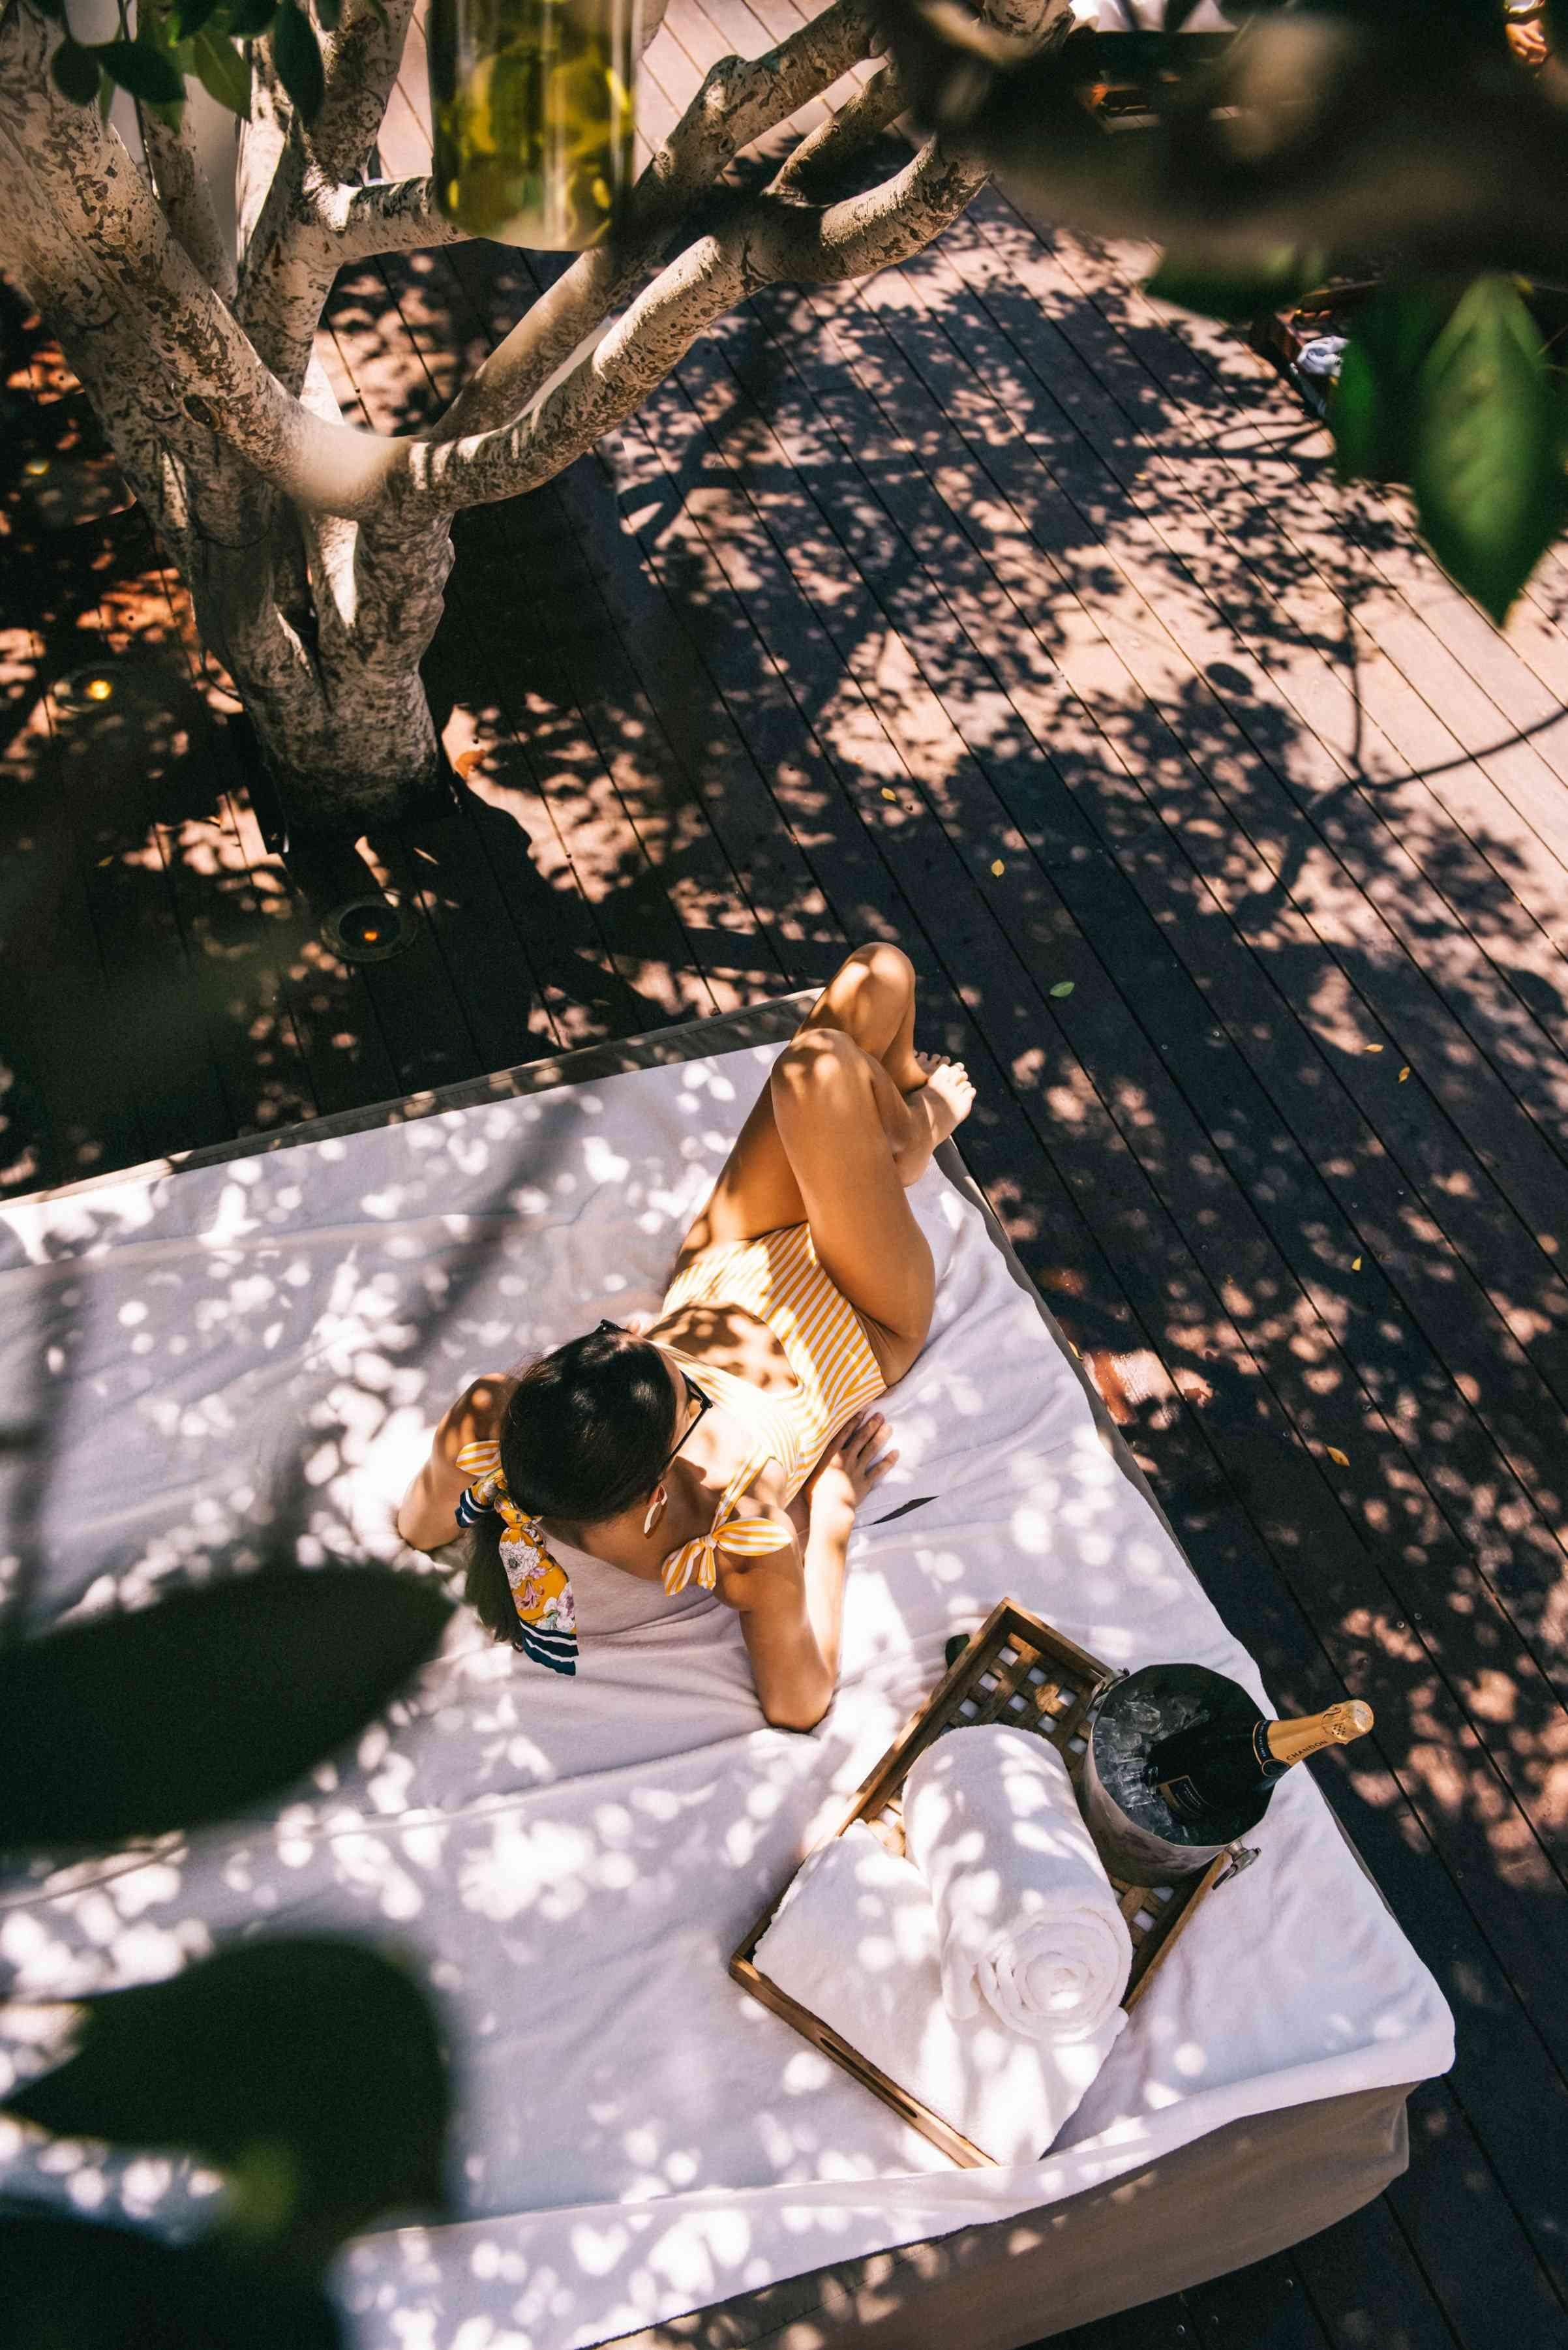 woman on a blanket outside with champagne